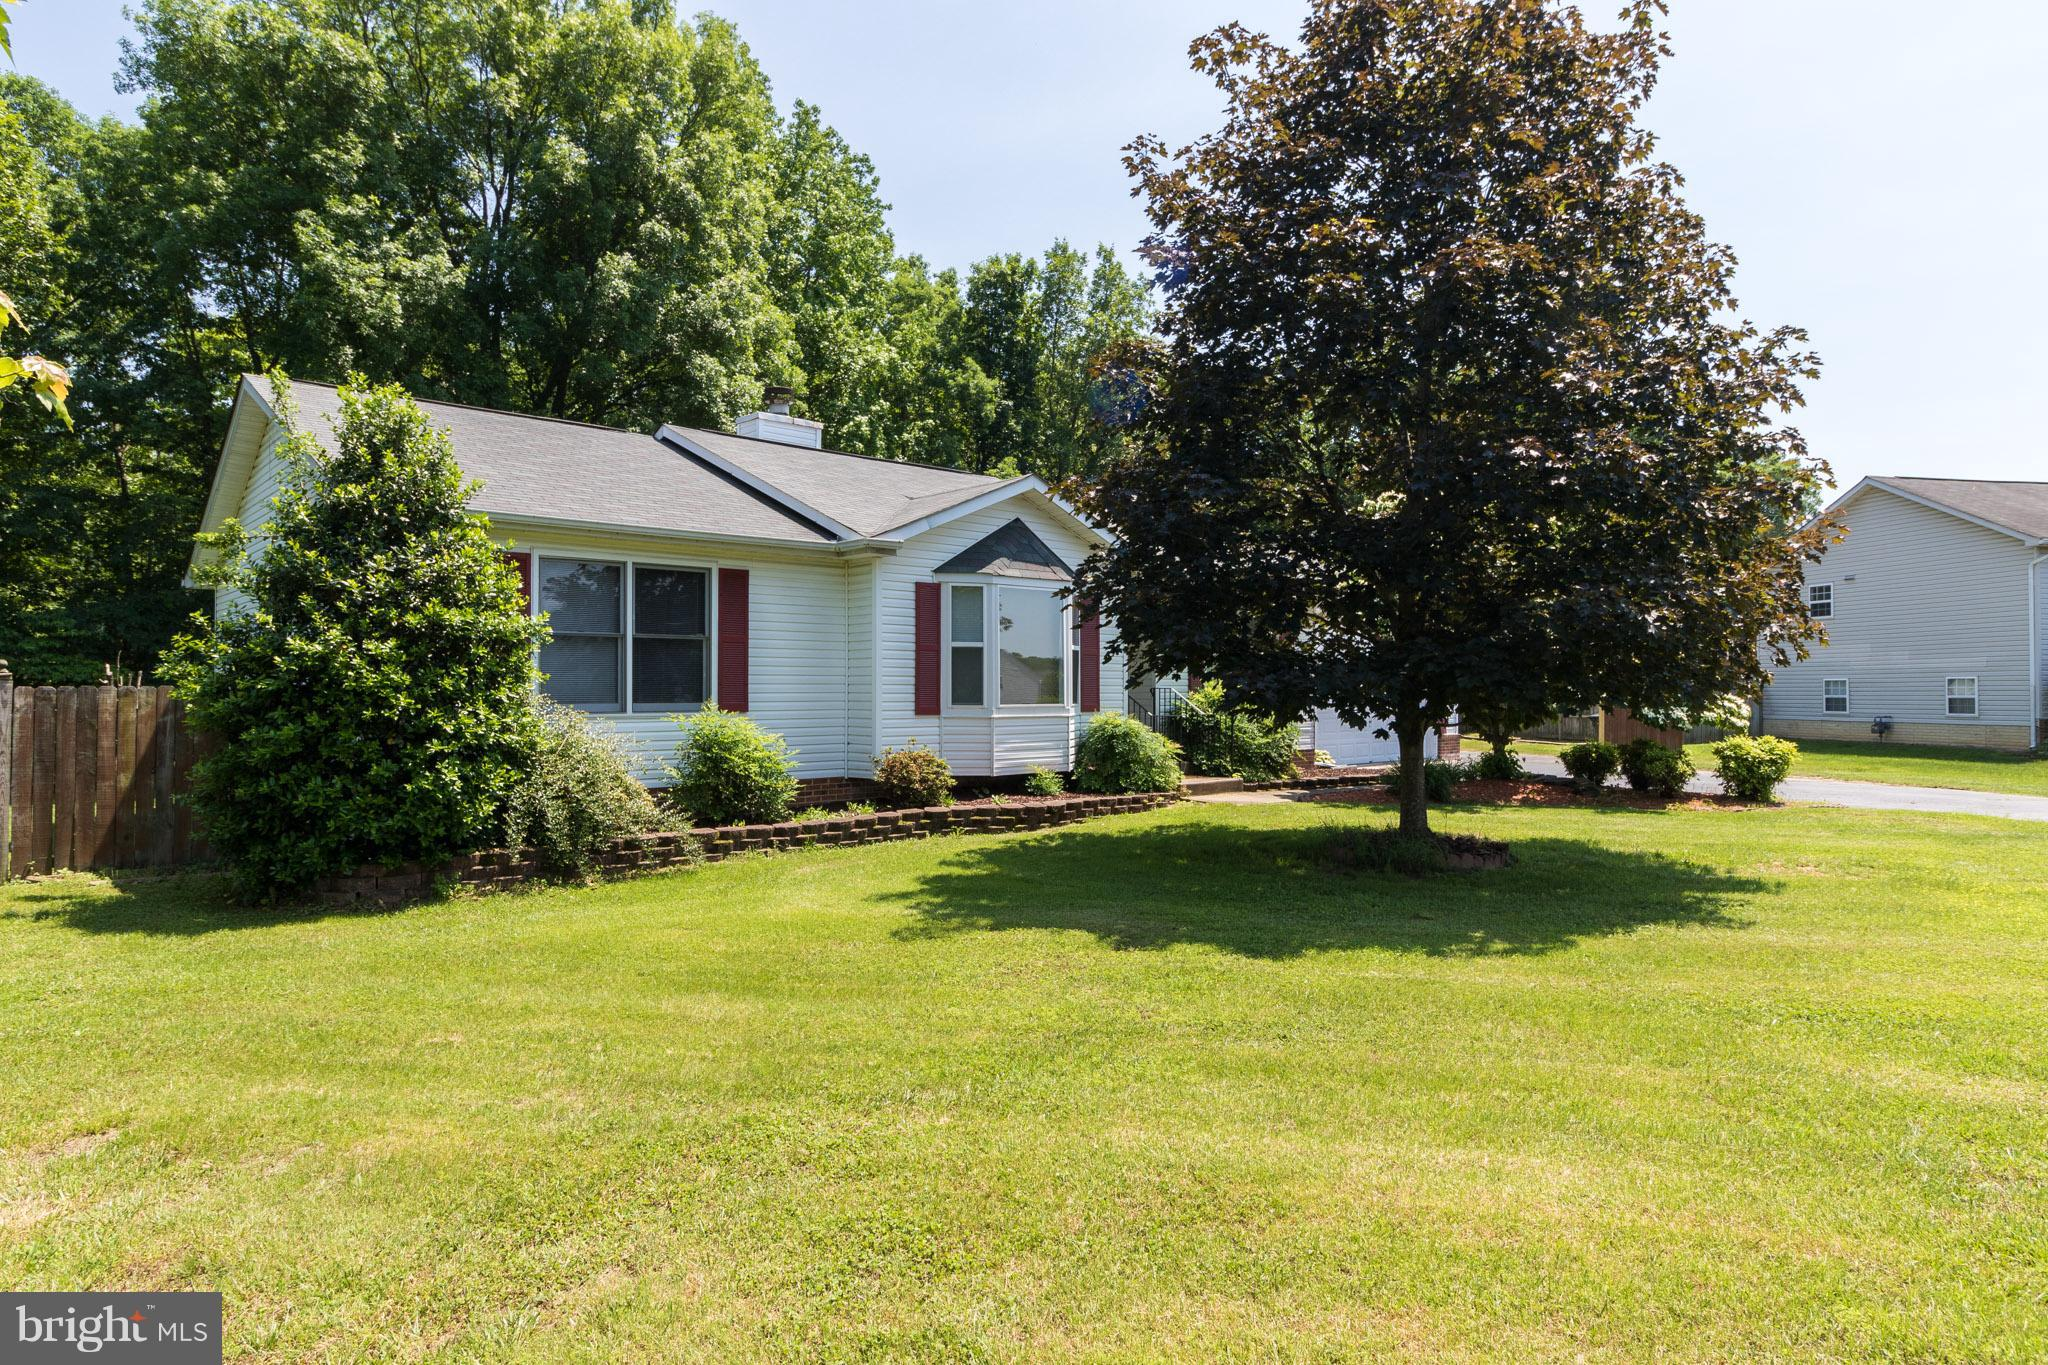 Spacious Rambler on a Cul-de-sac lot. Over 3100 SF of Finished Space. Price Per SF is $104. Sun-room overlooks Fenced Backyard and wooded bird sanctuary - wild-life galore! 4 BRs (1 NTC) 3 Full Baths (1 Handicap Accessible.) Full,  Finished Basement includes huge Utility/Workshop with shelving. Solid wood doors and stained trim throughout first floor. 2 Car Attached Garage includes Handicap Chair Lift. NO HOA!